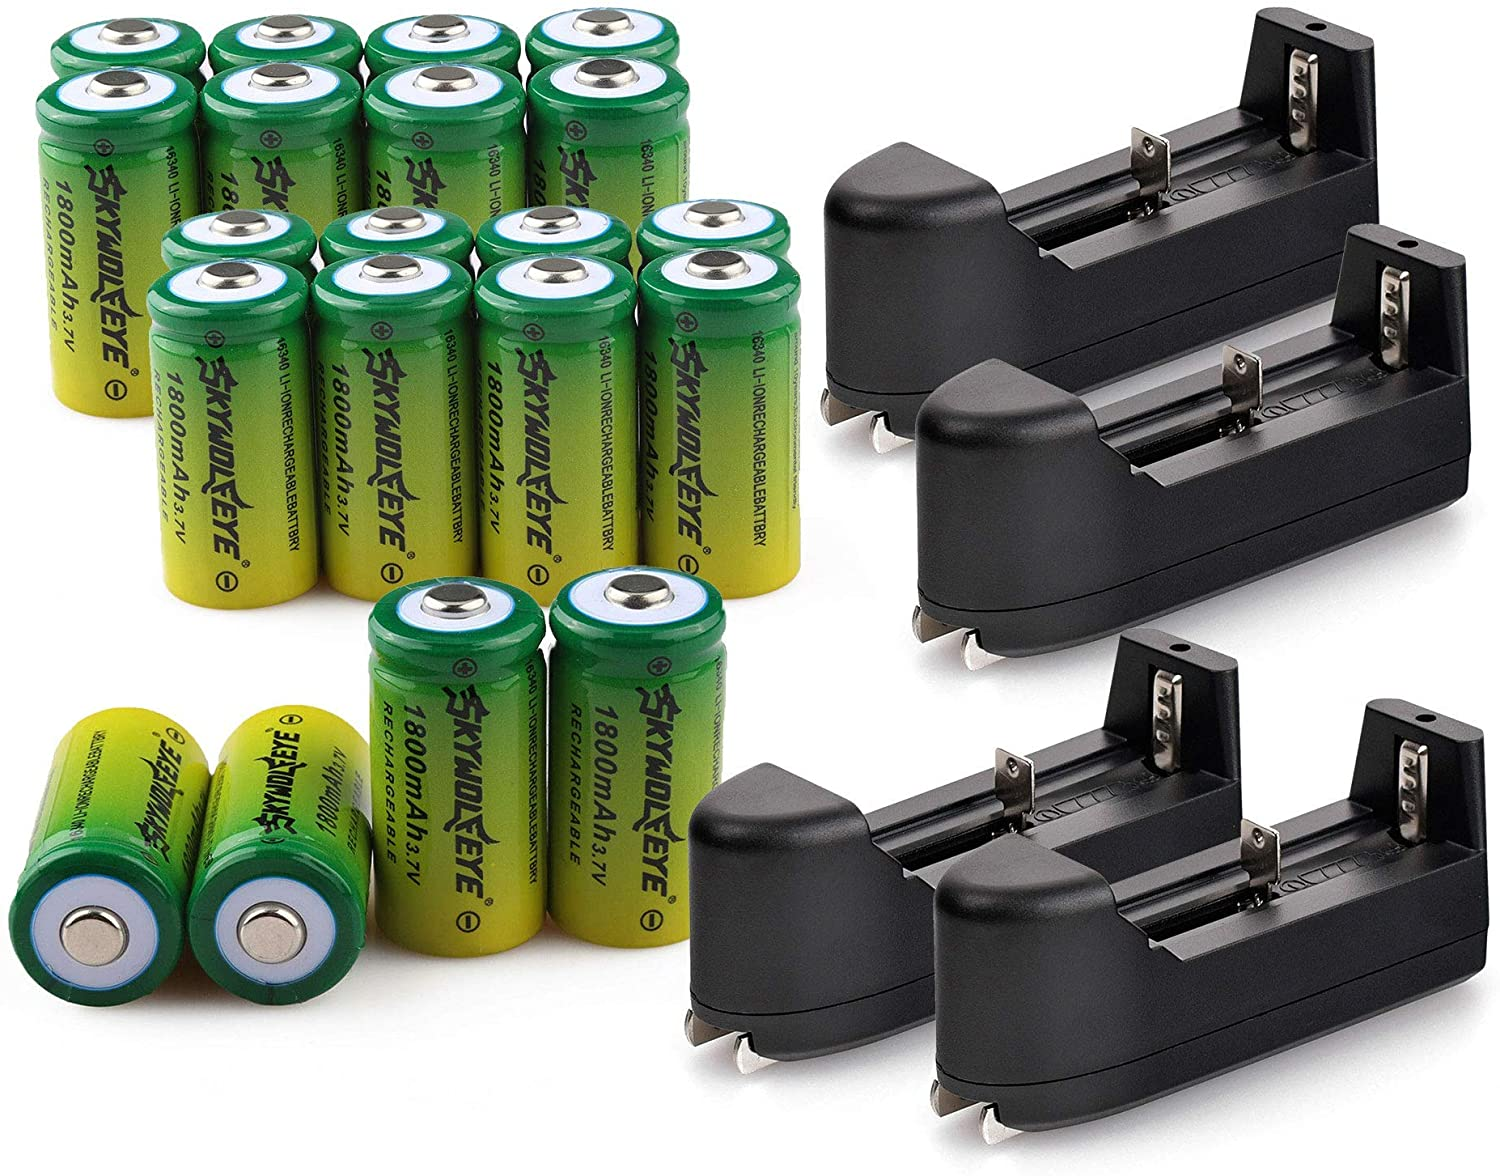 20 PCS 3.7V 1800mAh Li-ion 16#340 Battery CR123A Rechargeable Batteries & 4 PCS Single Slot Universal Rechargeable Charger for Alro or LED Flashlight Torch Headlamp